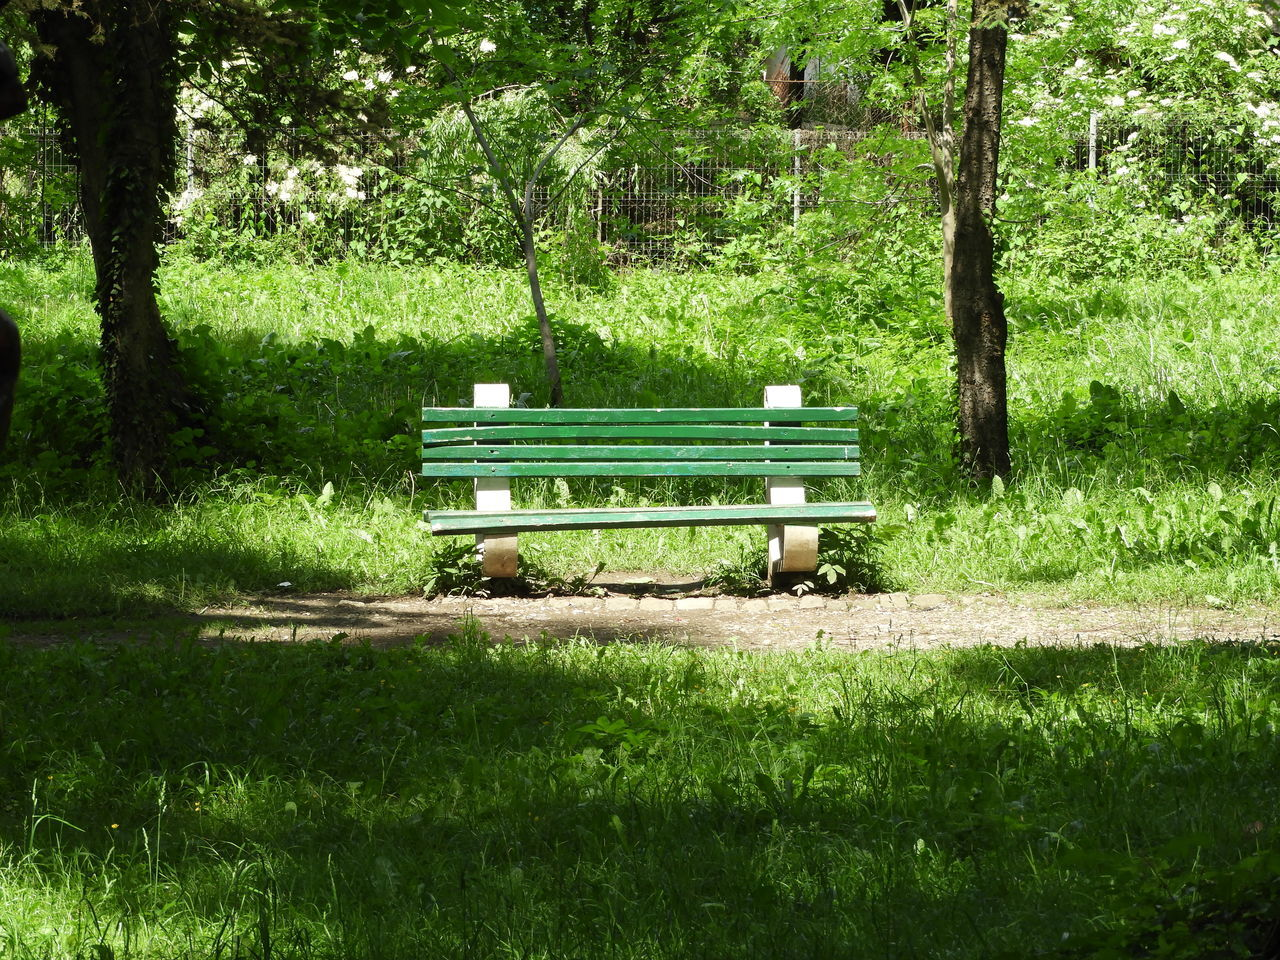 bench, tree, green color, park - man made space, grass, nature, absence, growth, day, tranquility, tranquil scene, beauty in nature, no people, seat, tree trunk, outdoors, scenics